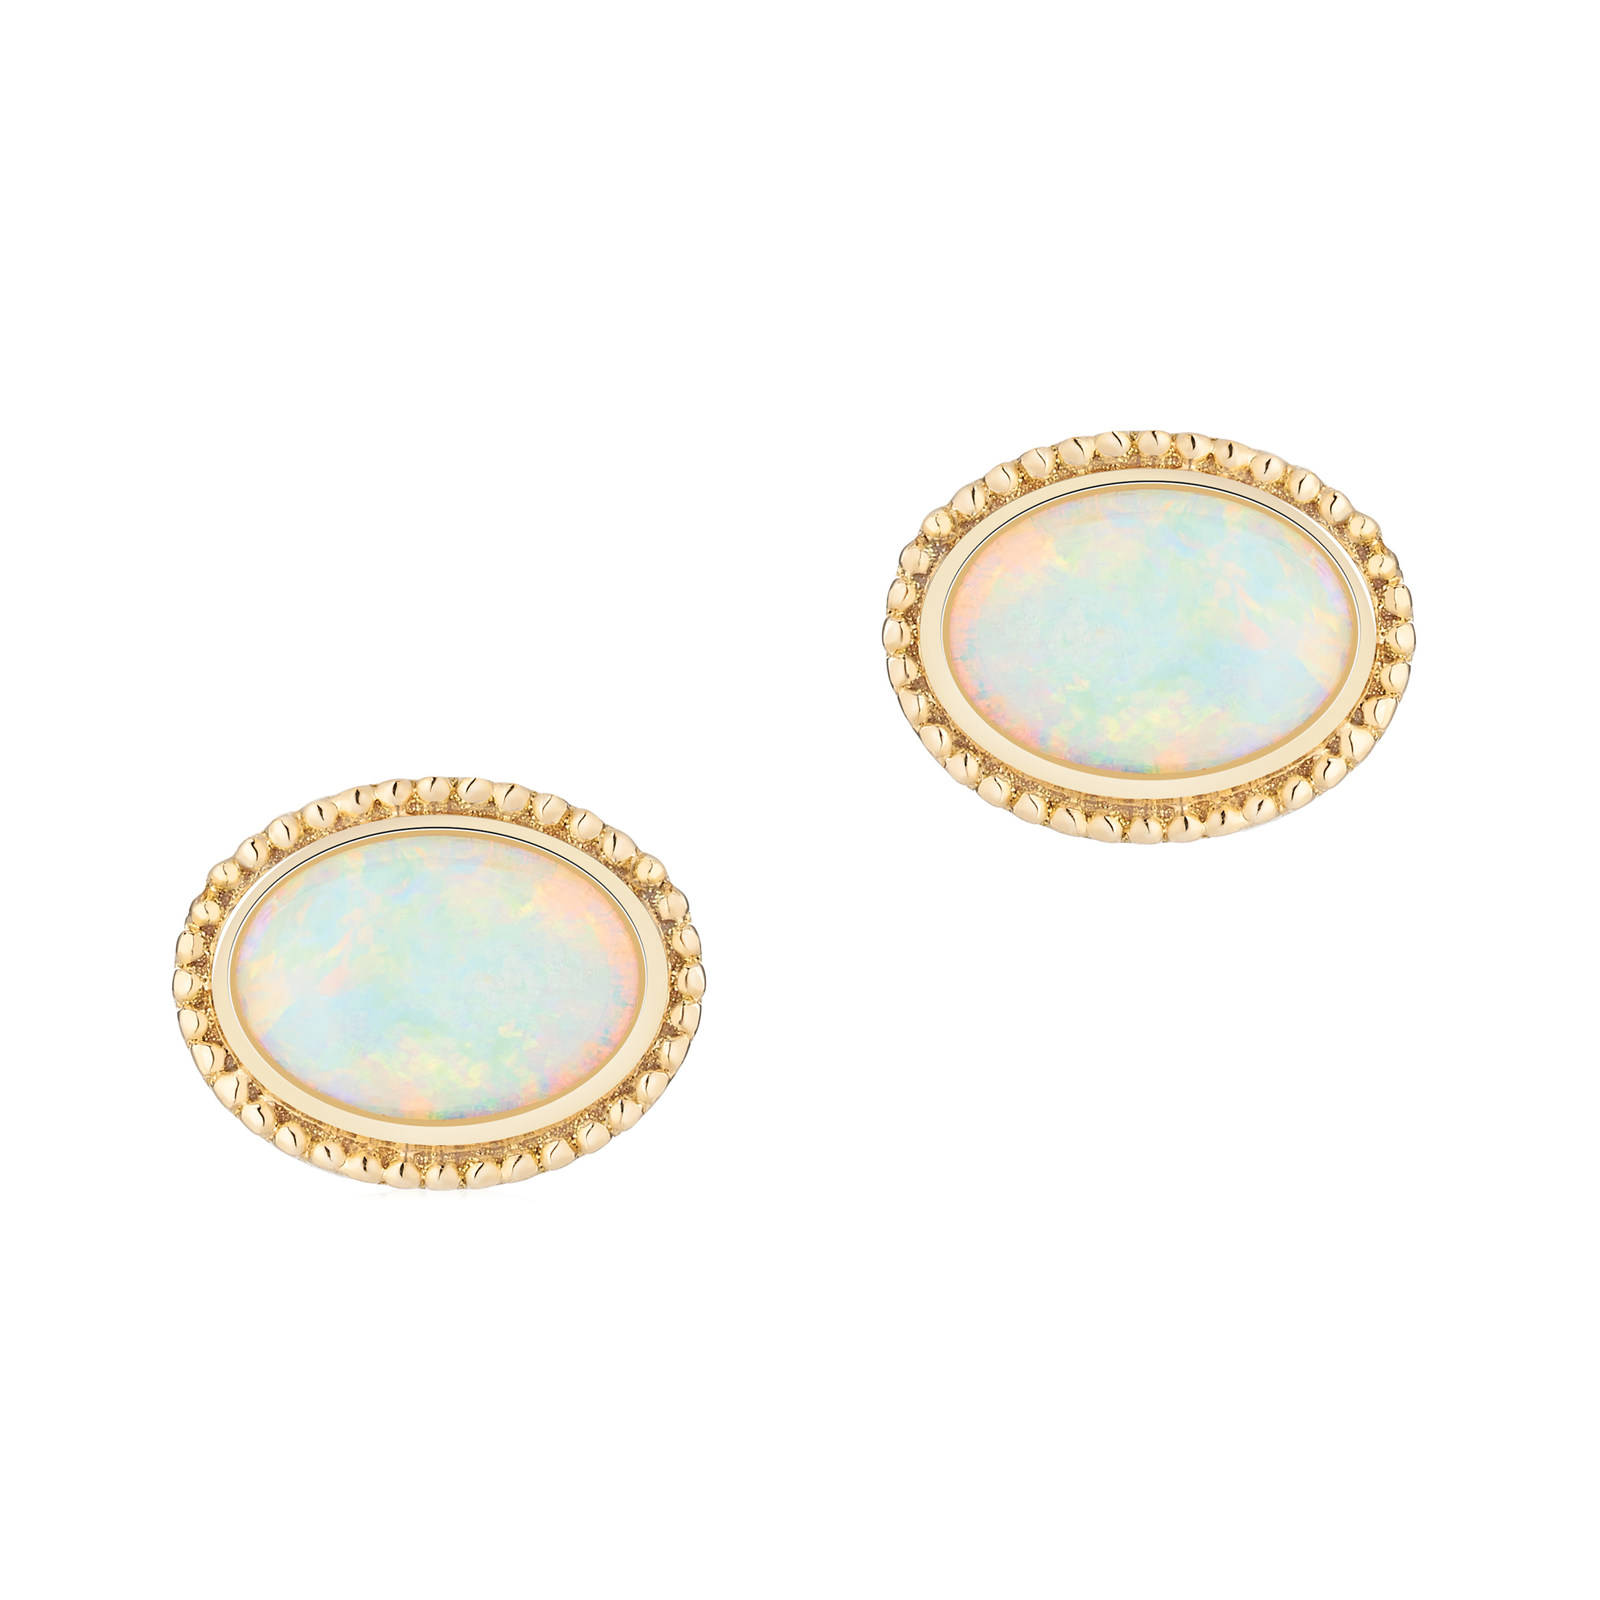 dowdy oval and kevin joann earrings opal store